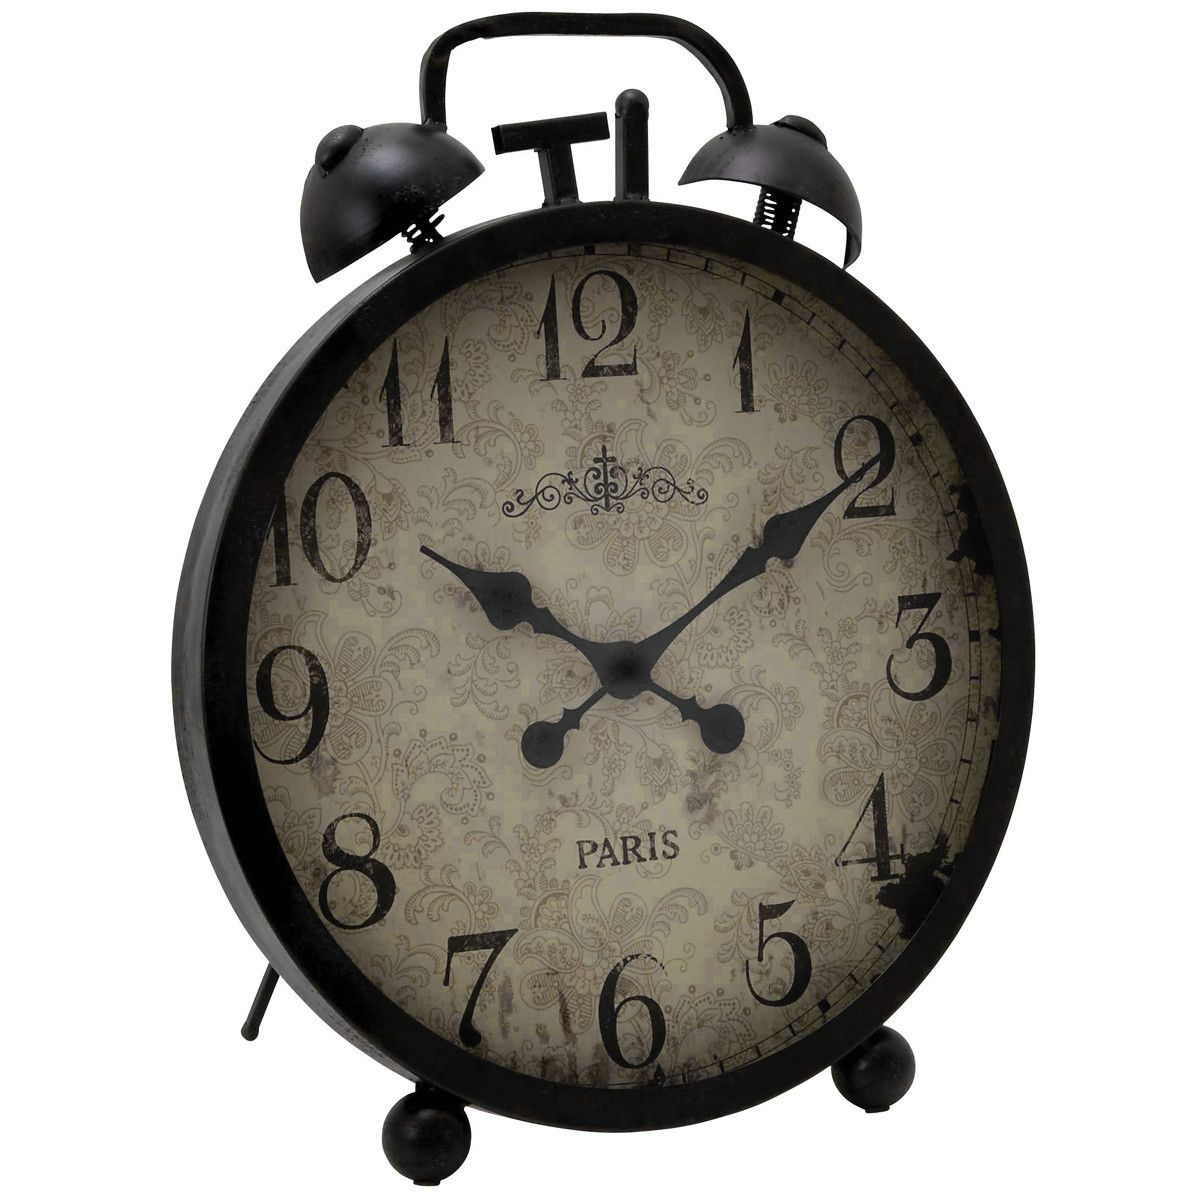 Urban Handcrafted Oversized Metal Table Clock